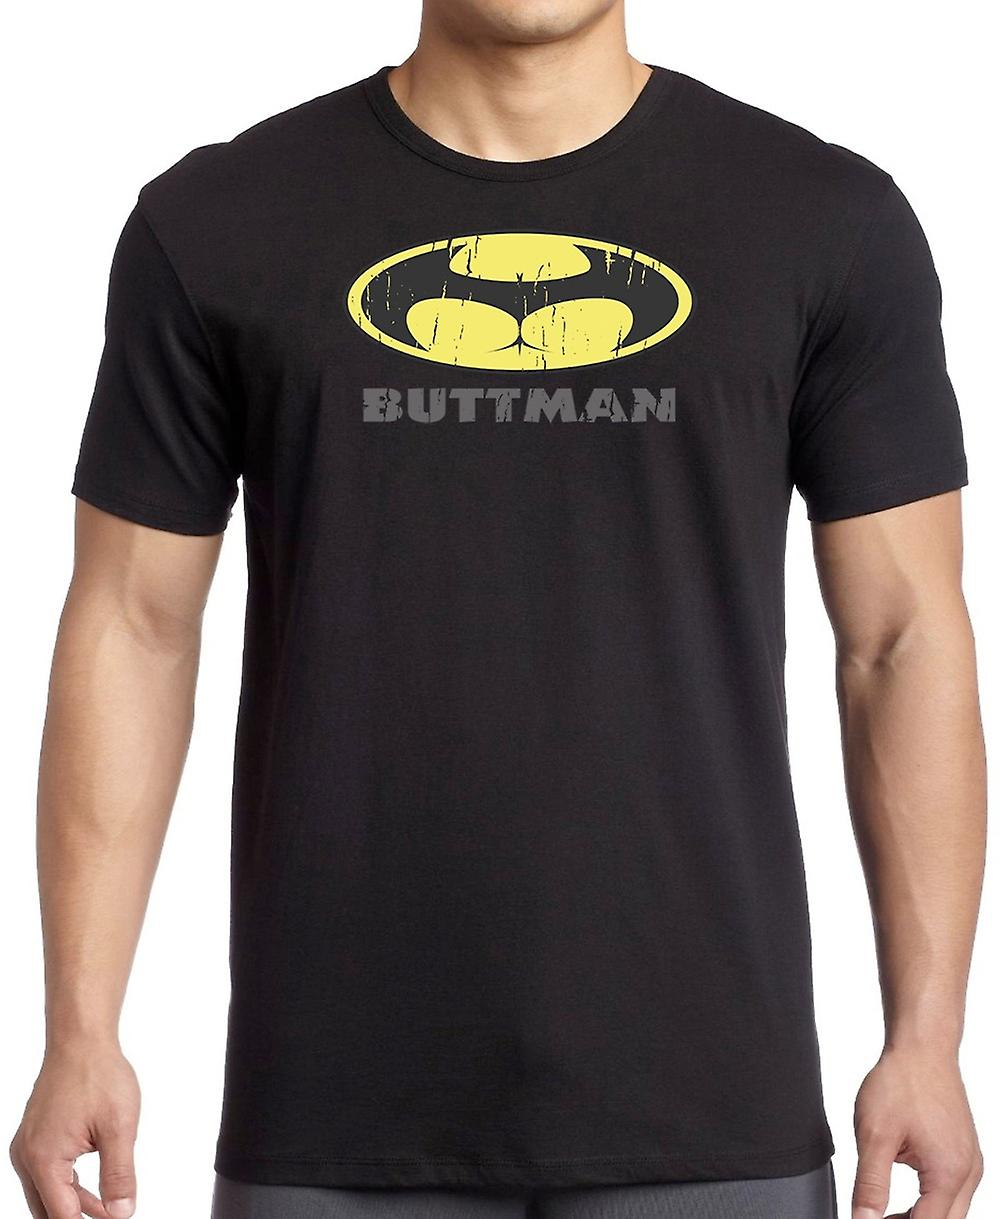 BUTTMAN - grappige grap superheld T Shirt